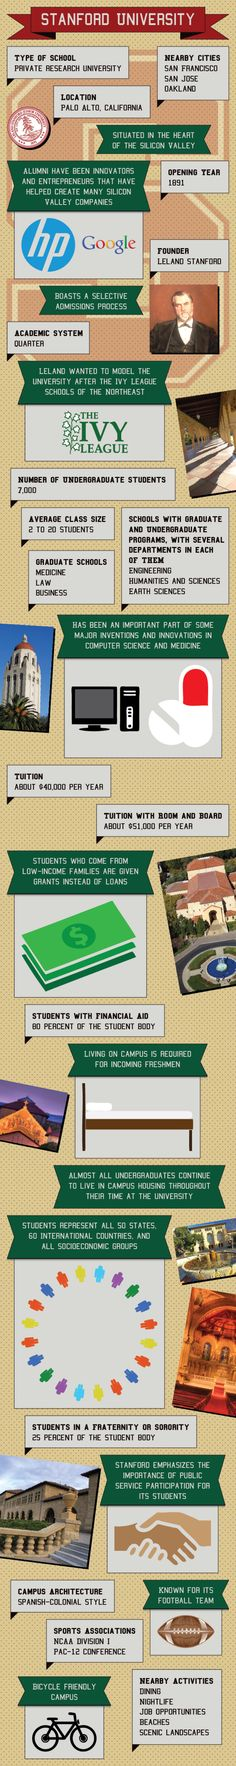 Stanford University Infographic